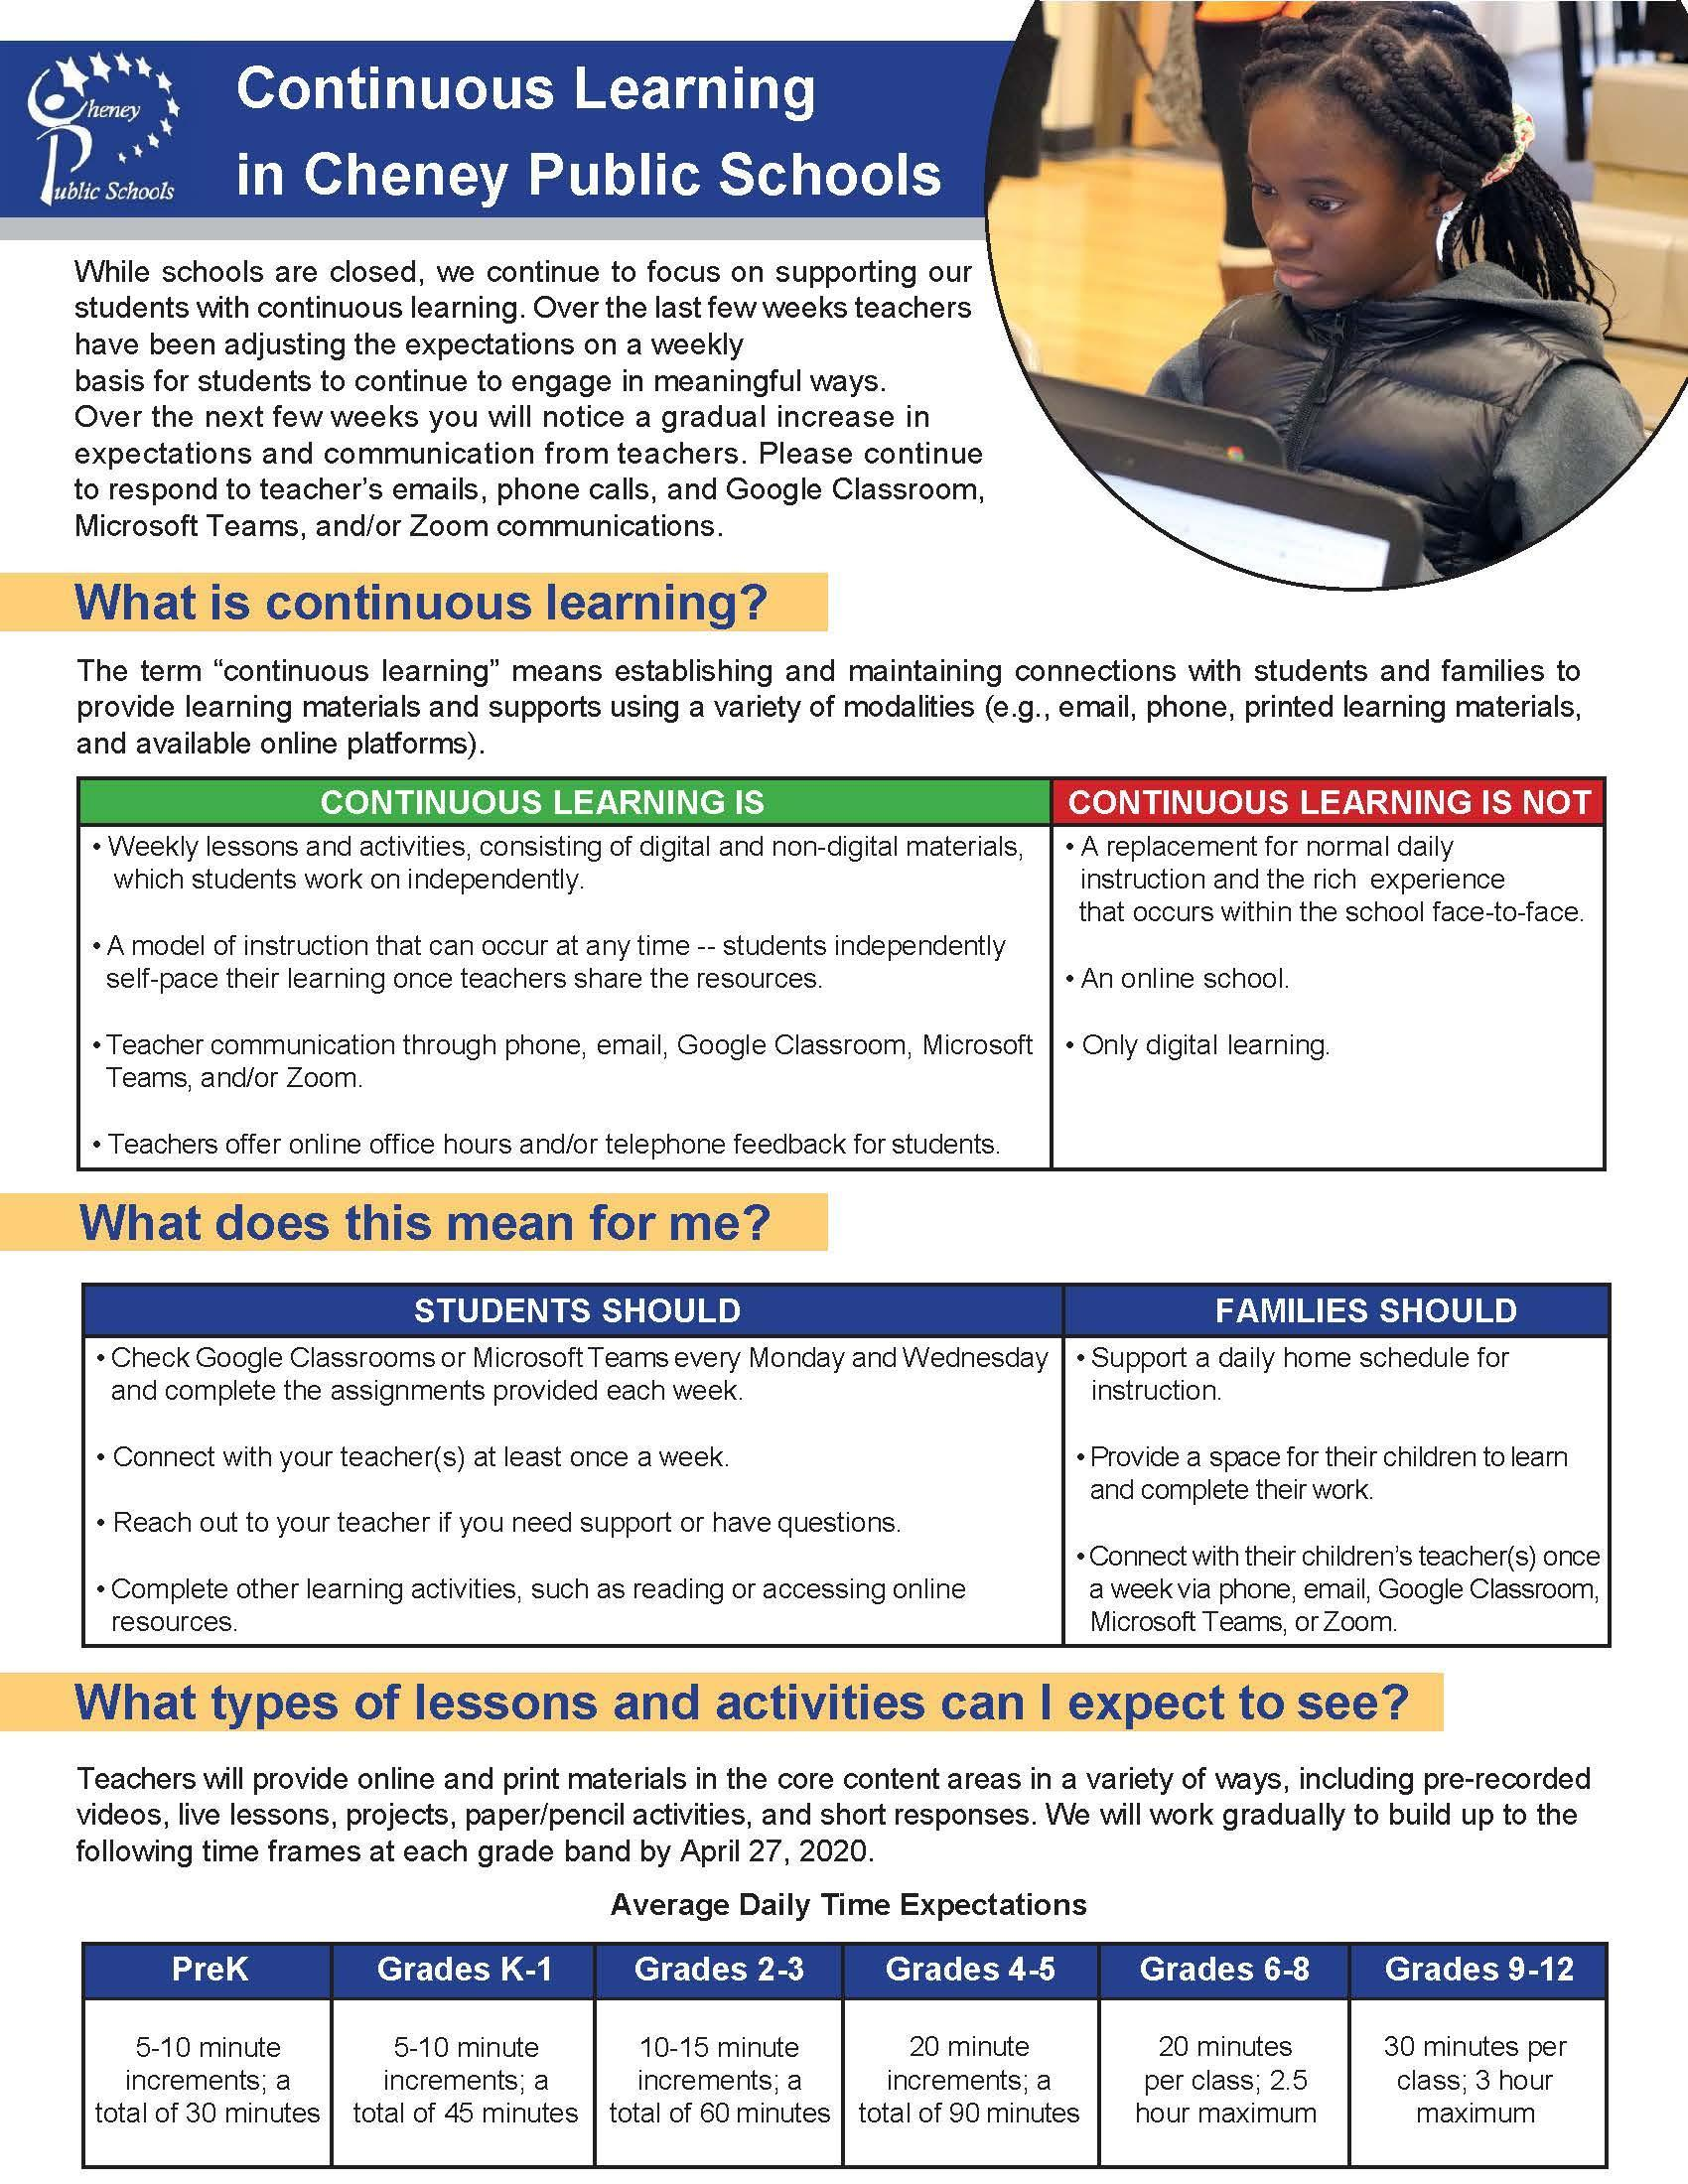 continuous learning information